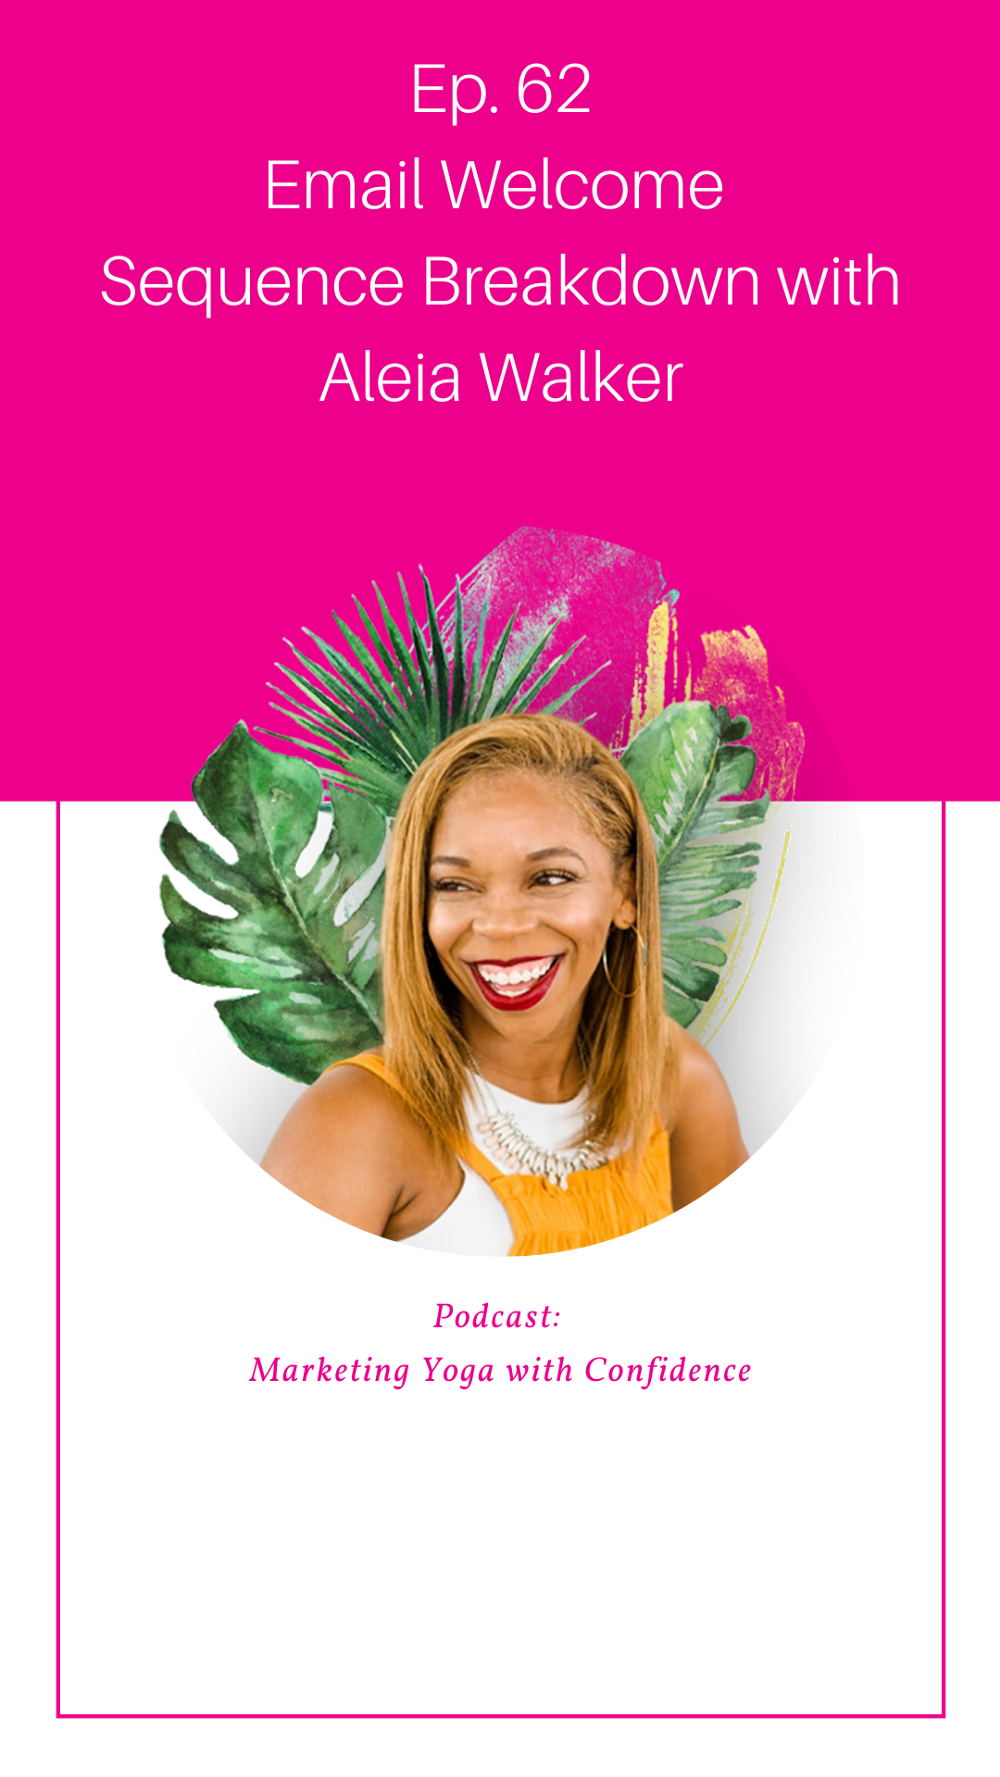 Email Welcome Sequence Breakdown with Aleia Walker